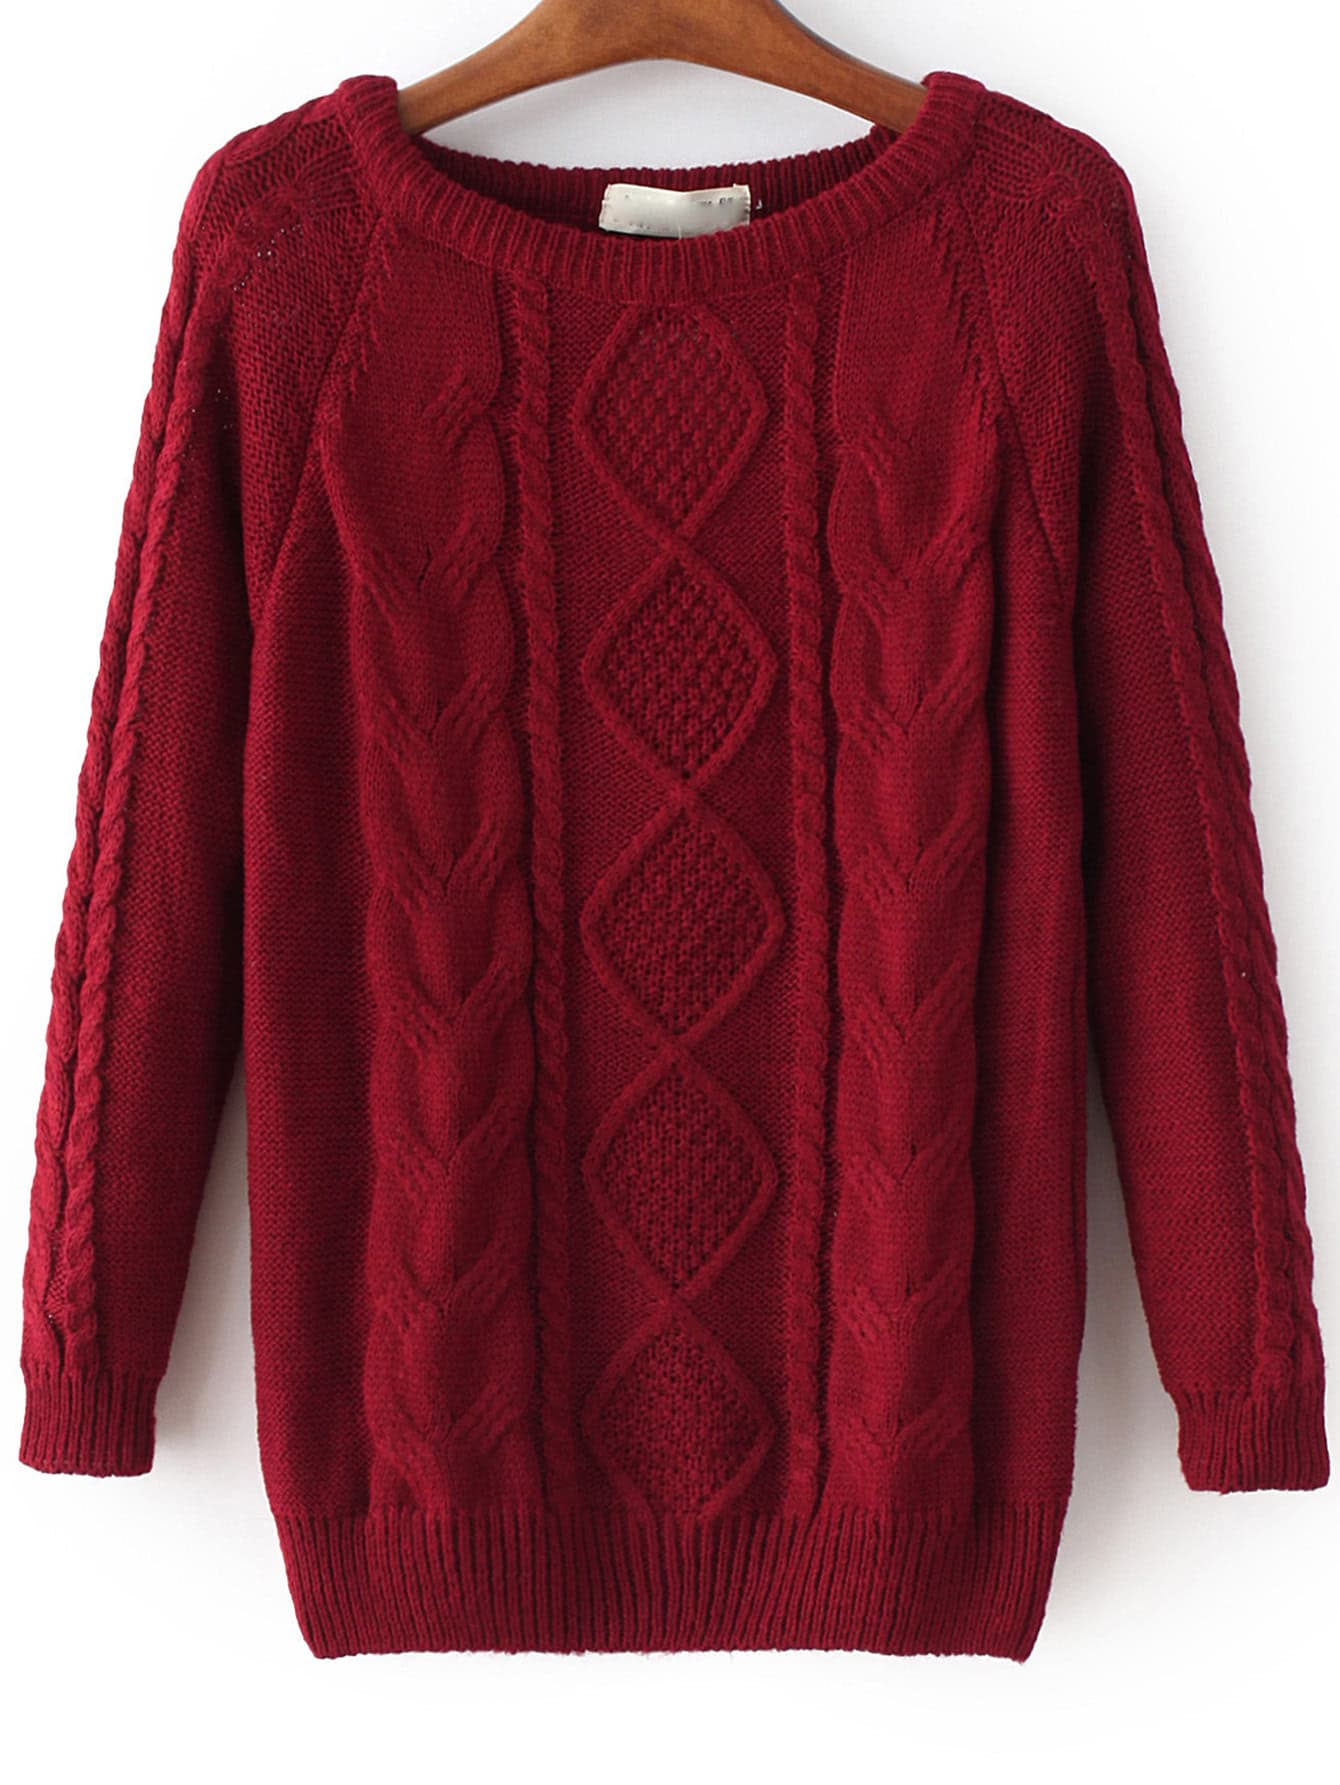 Cable Knit Loose Wine Red SweaterCable Knit Loose Wine Red Sweater<br><br>color: Burgundy<br>size: one-size